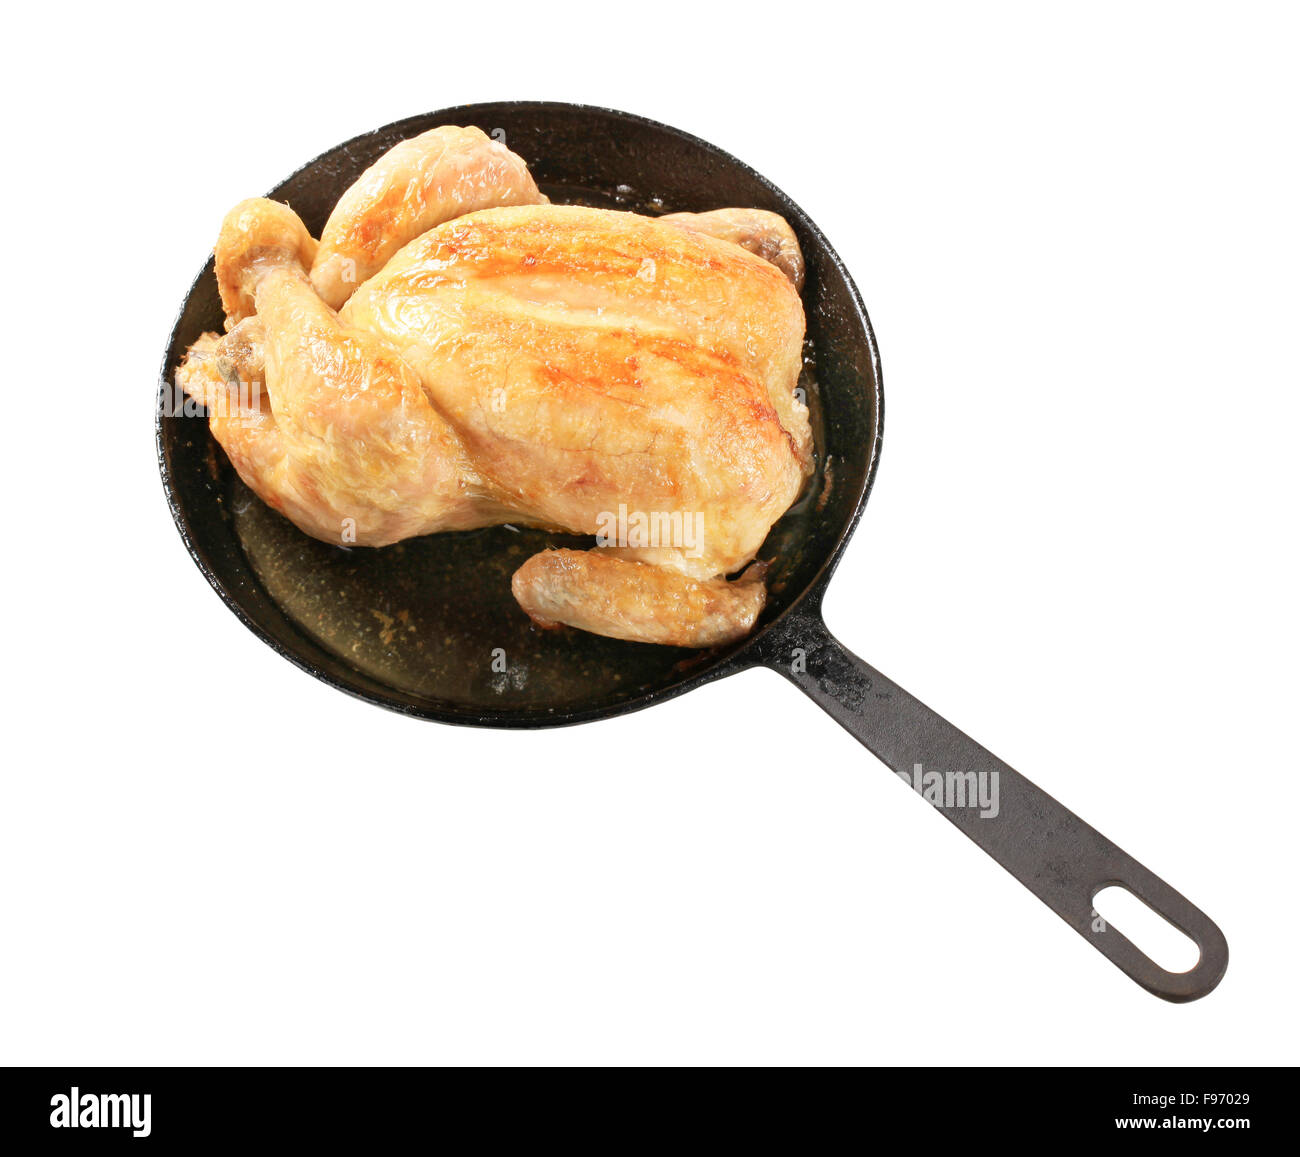 Baked chicken on an iron skillet - Stock Image